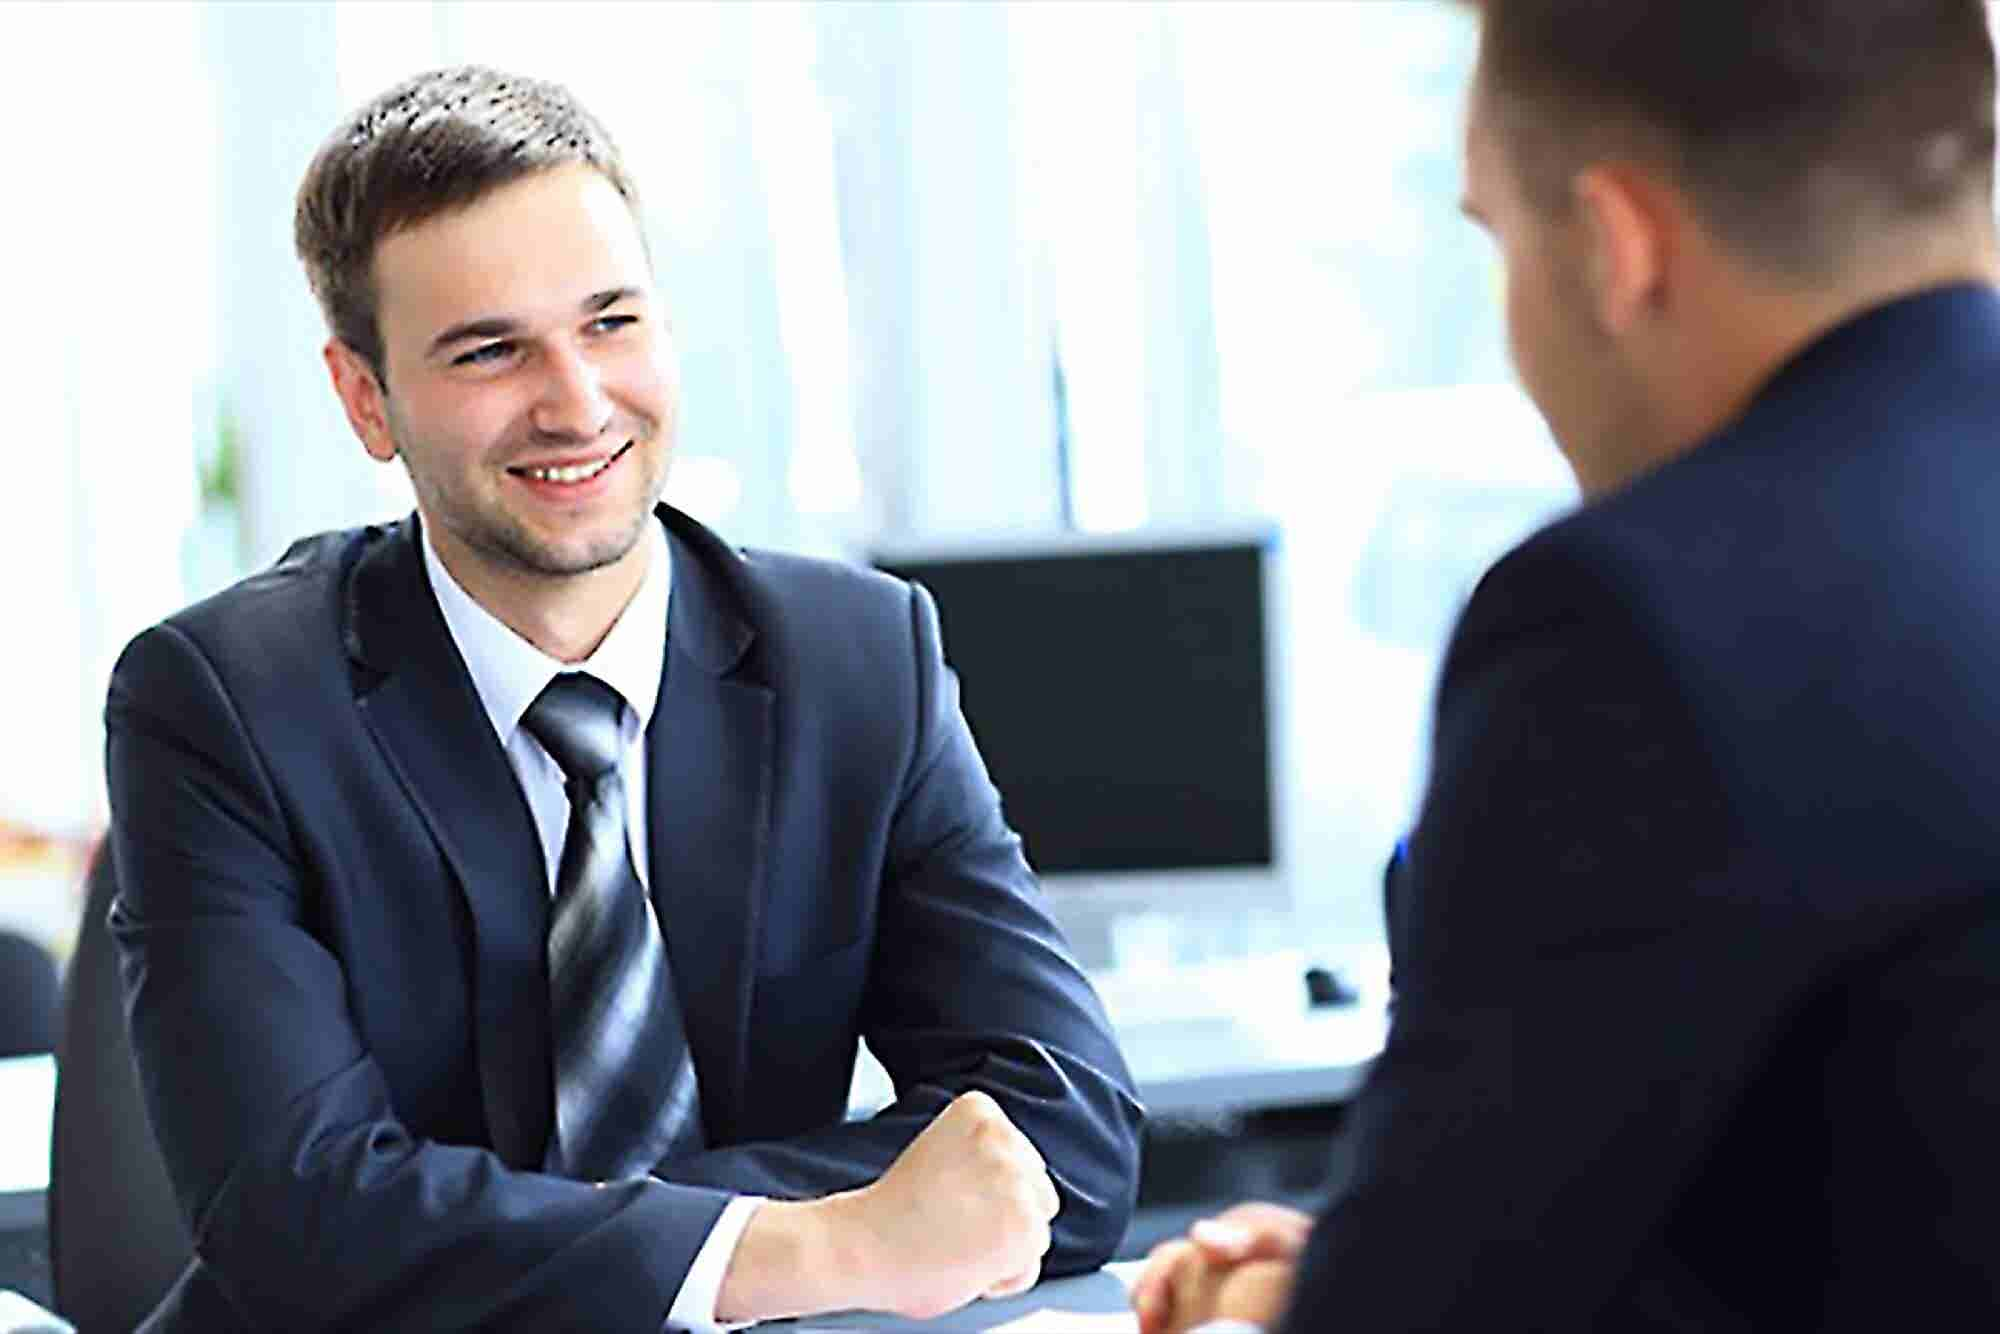 The 5 Must-Ask Interview Questions to Determine if Someone's a Fit